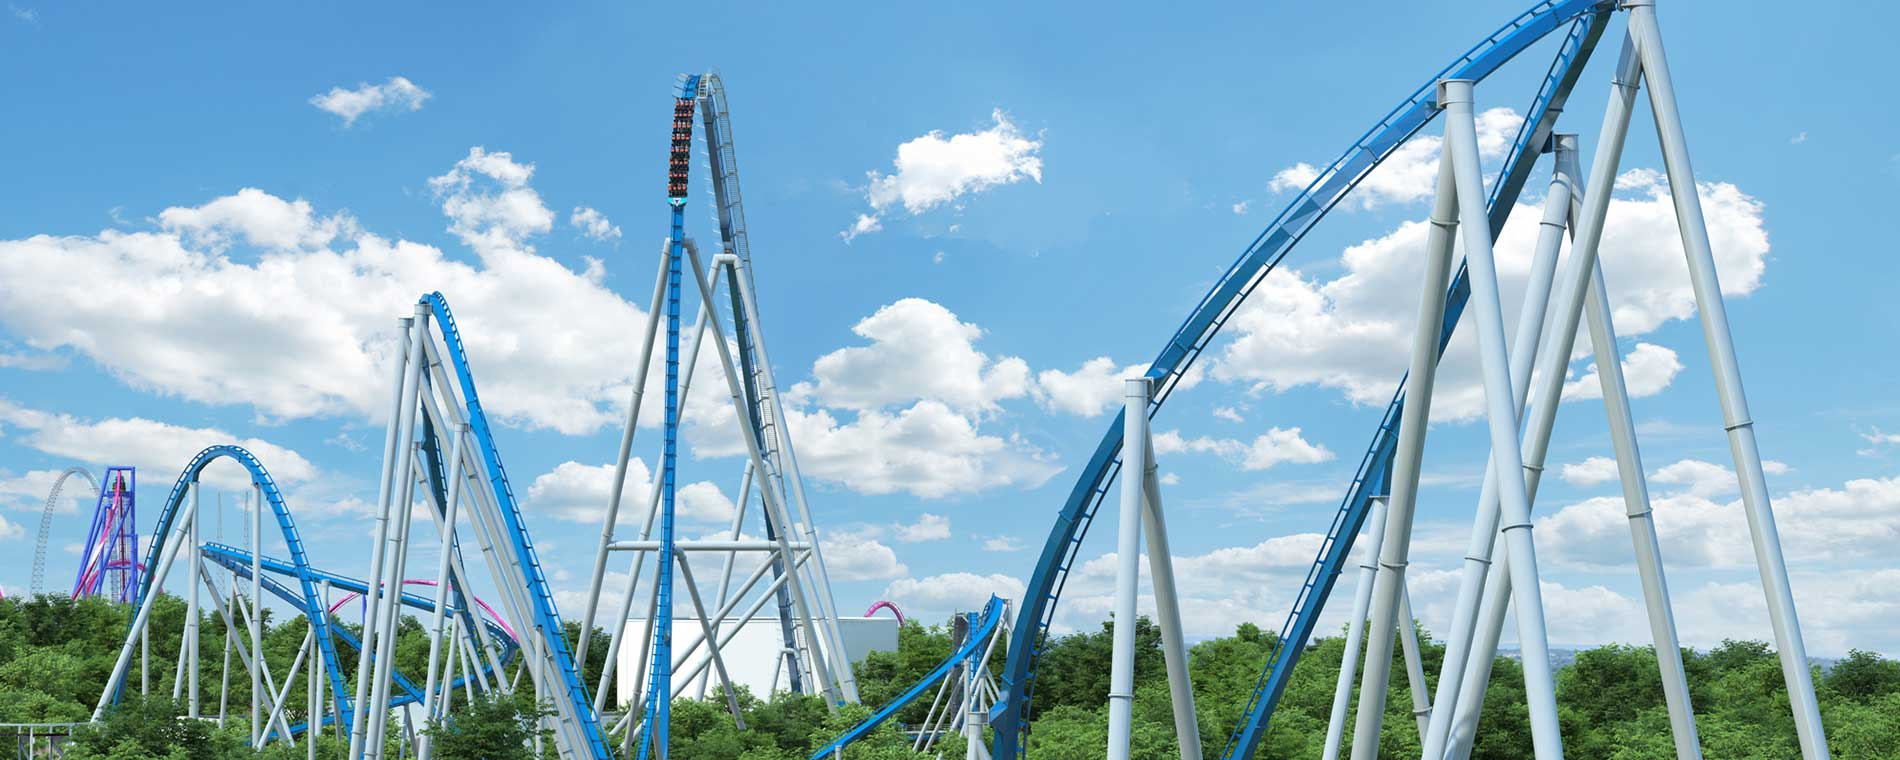 Kings Island to open seventh giga coaster in the world for 2020!